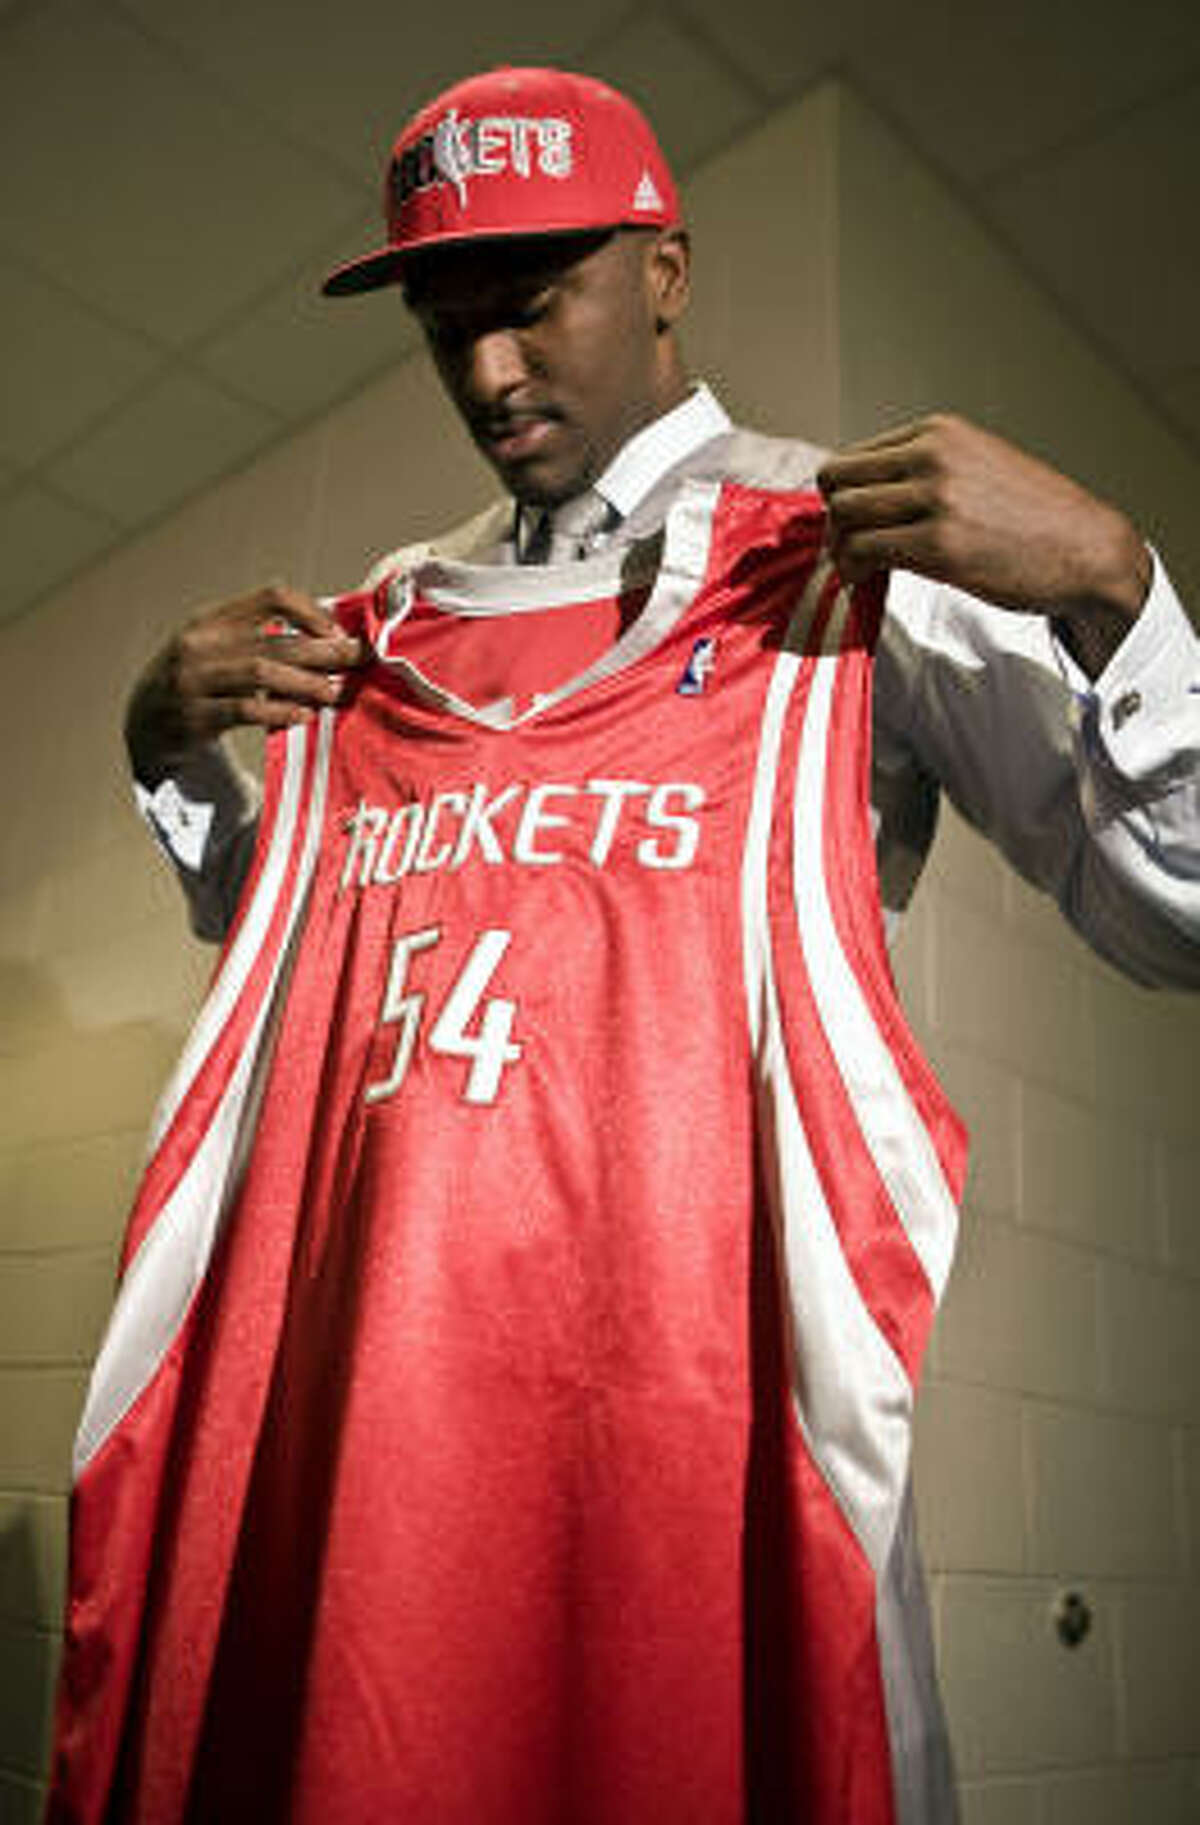 Rockets first-round pick Patrick Patterson looks over his jersey after addressing the media.